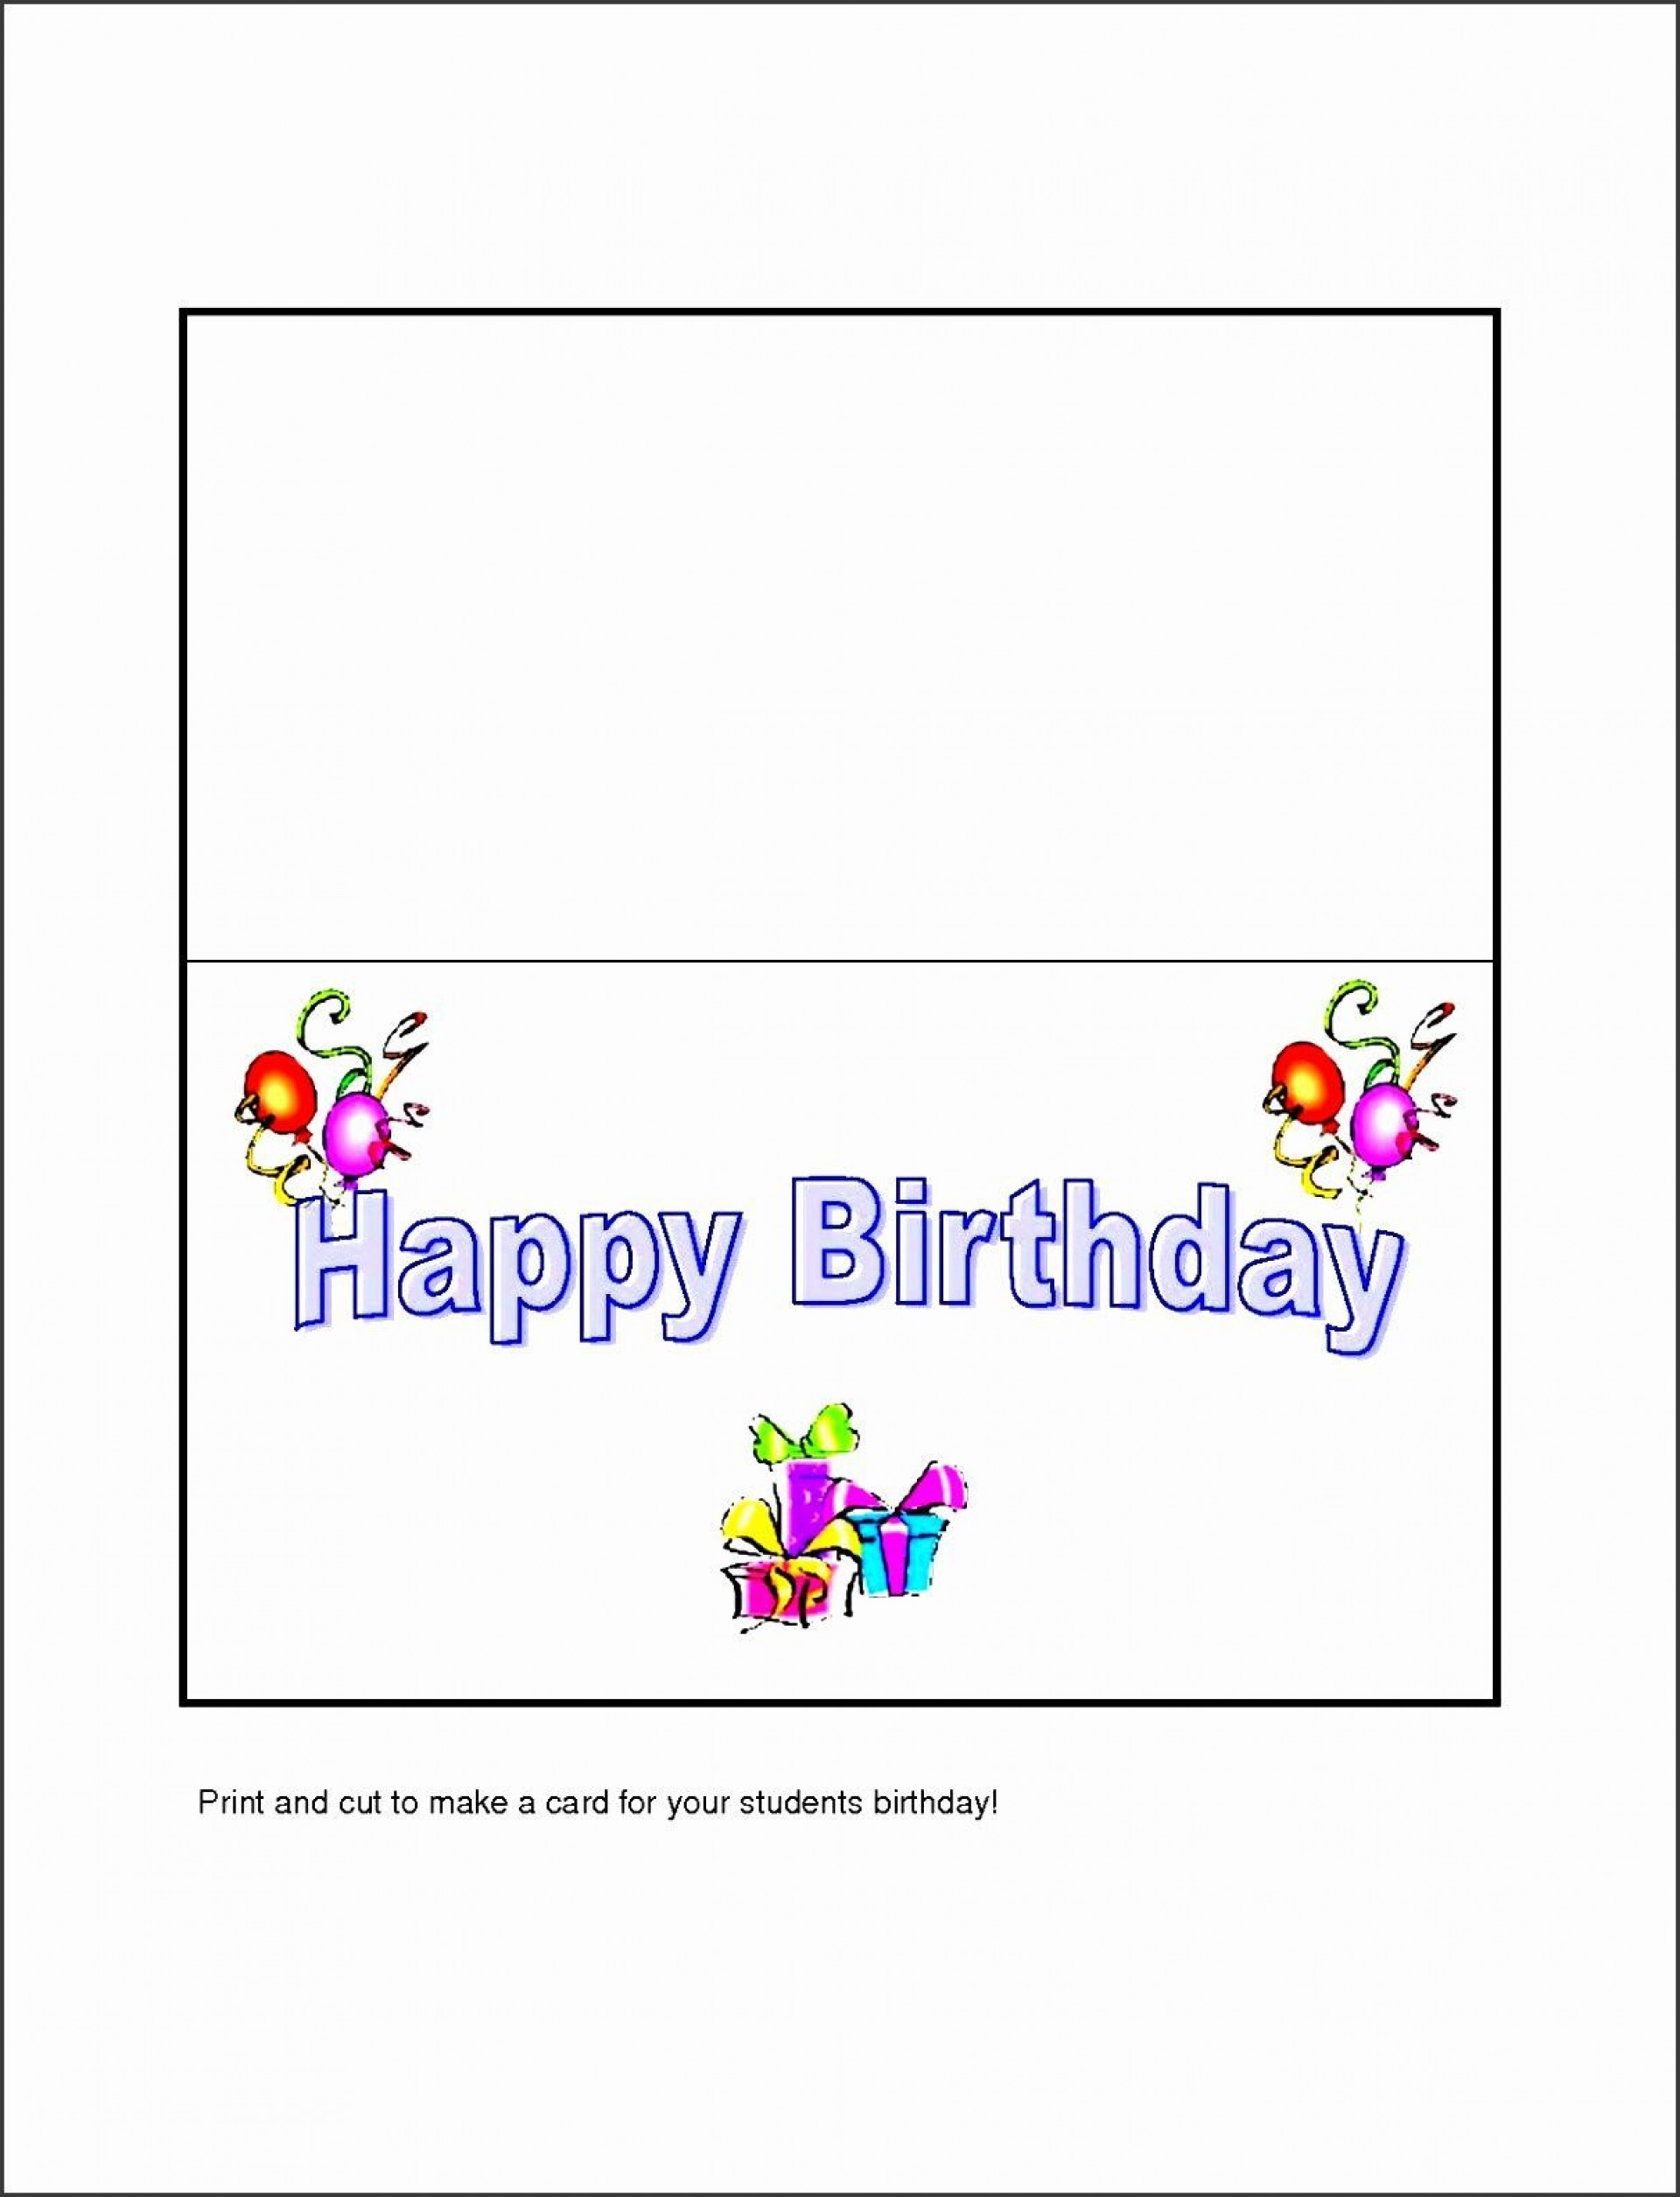 005 Fearsome Template For Birthday Card Photo  Happy Invitation1920